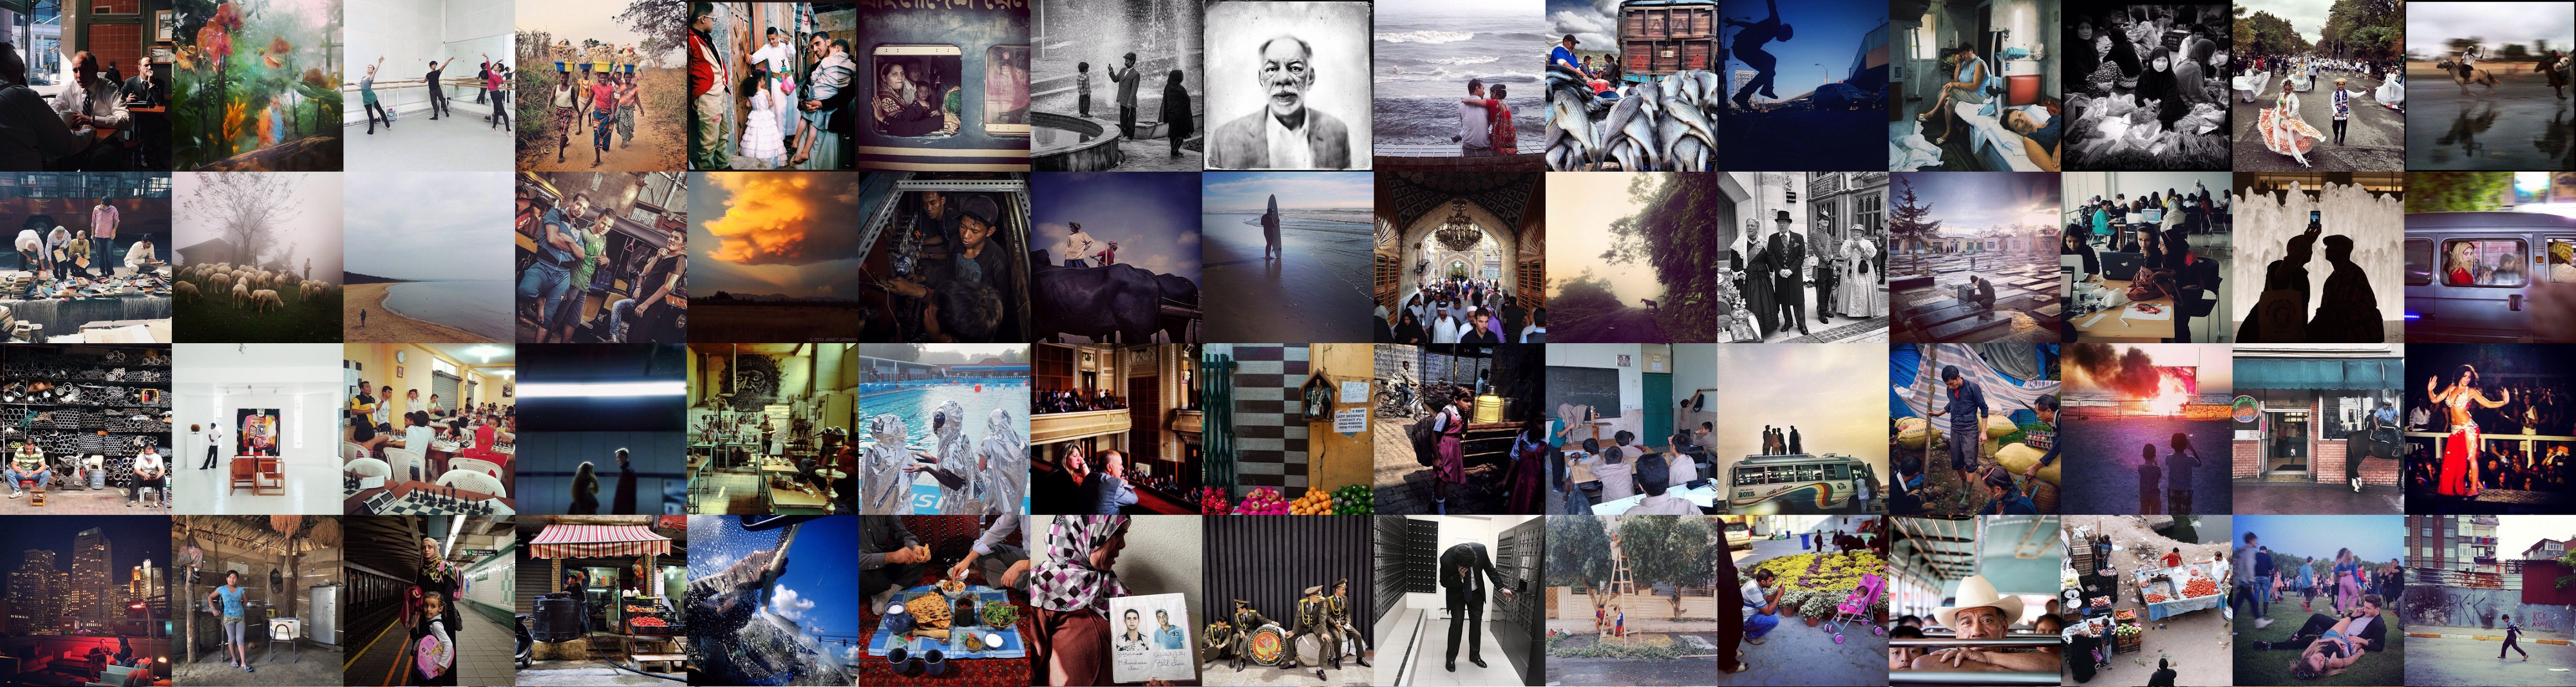 Five Years Of Documenting Everyday Life On Instagram By Elie Gardner Re Picture Medium